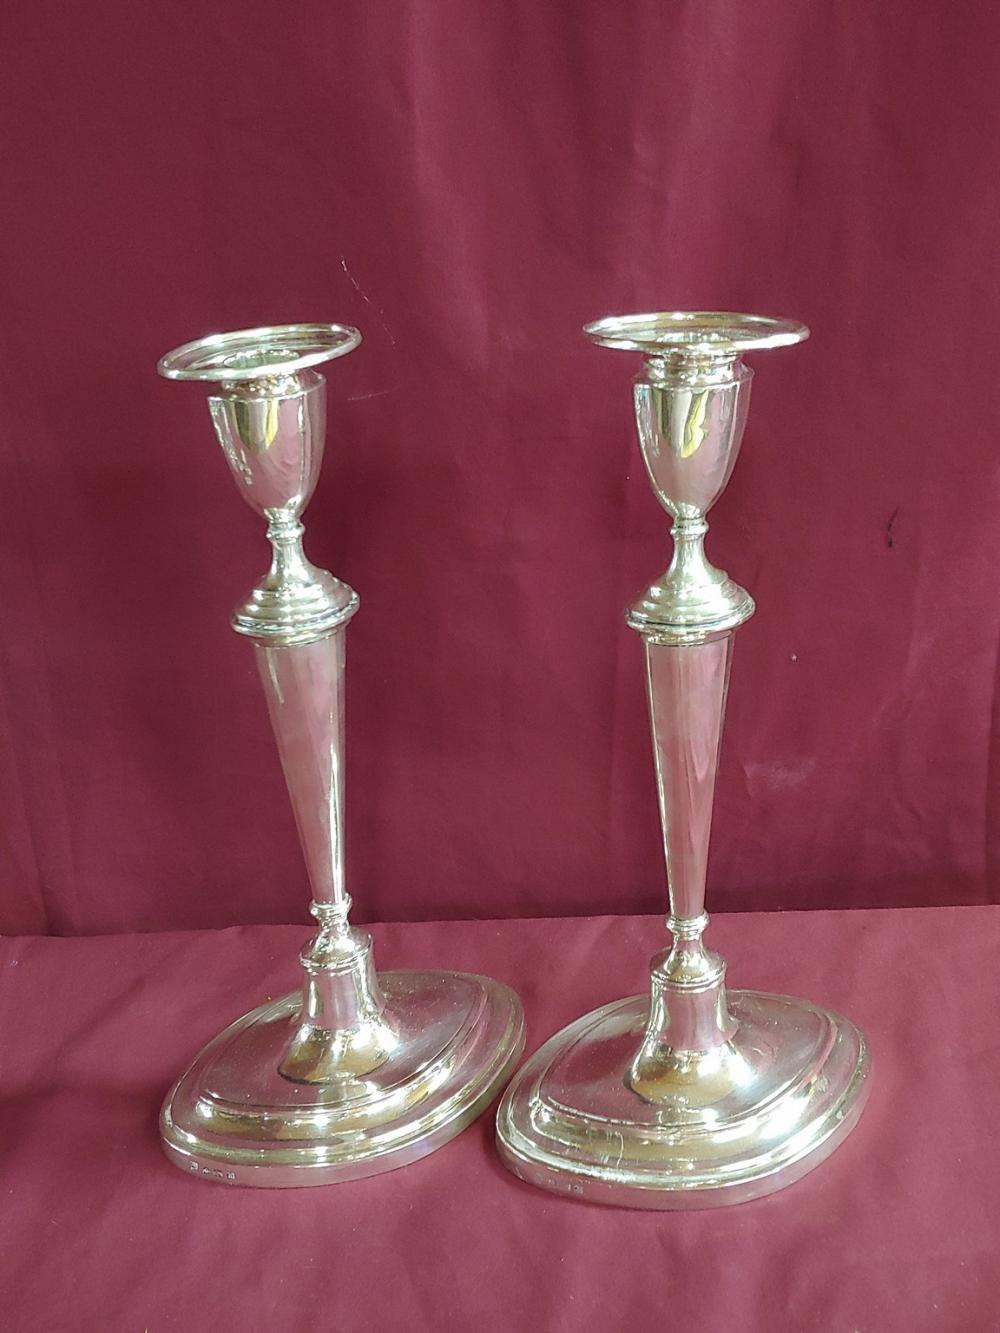 Pair of 1887 Hawksworth and Eyre Co. Sterling Candlesticks